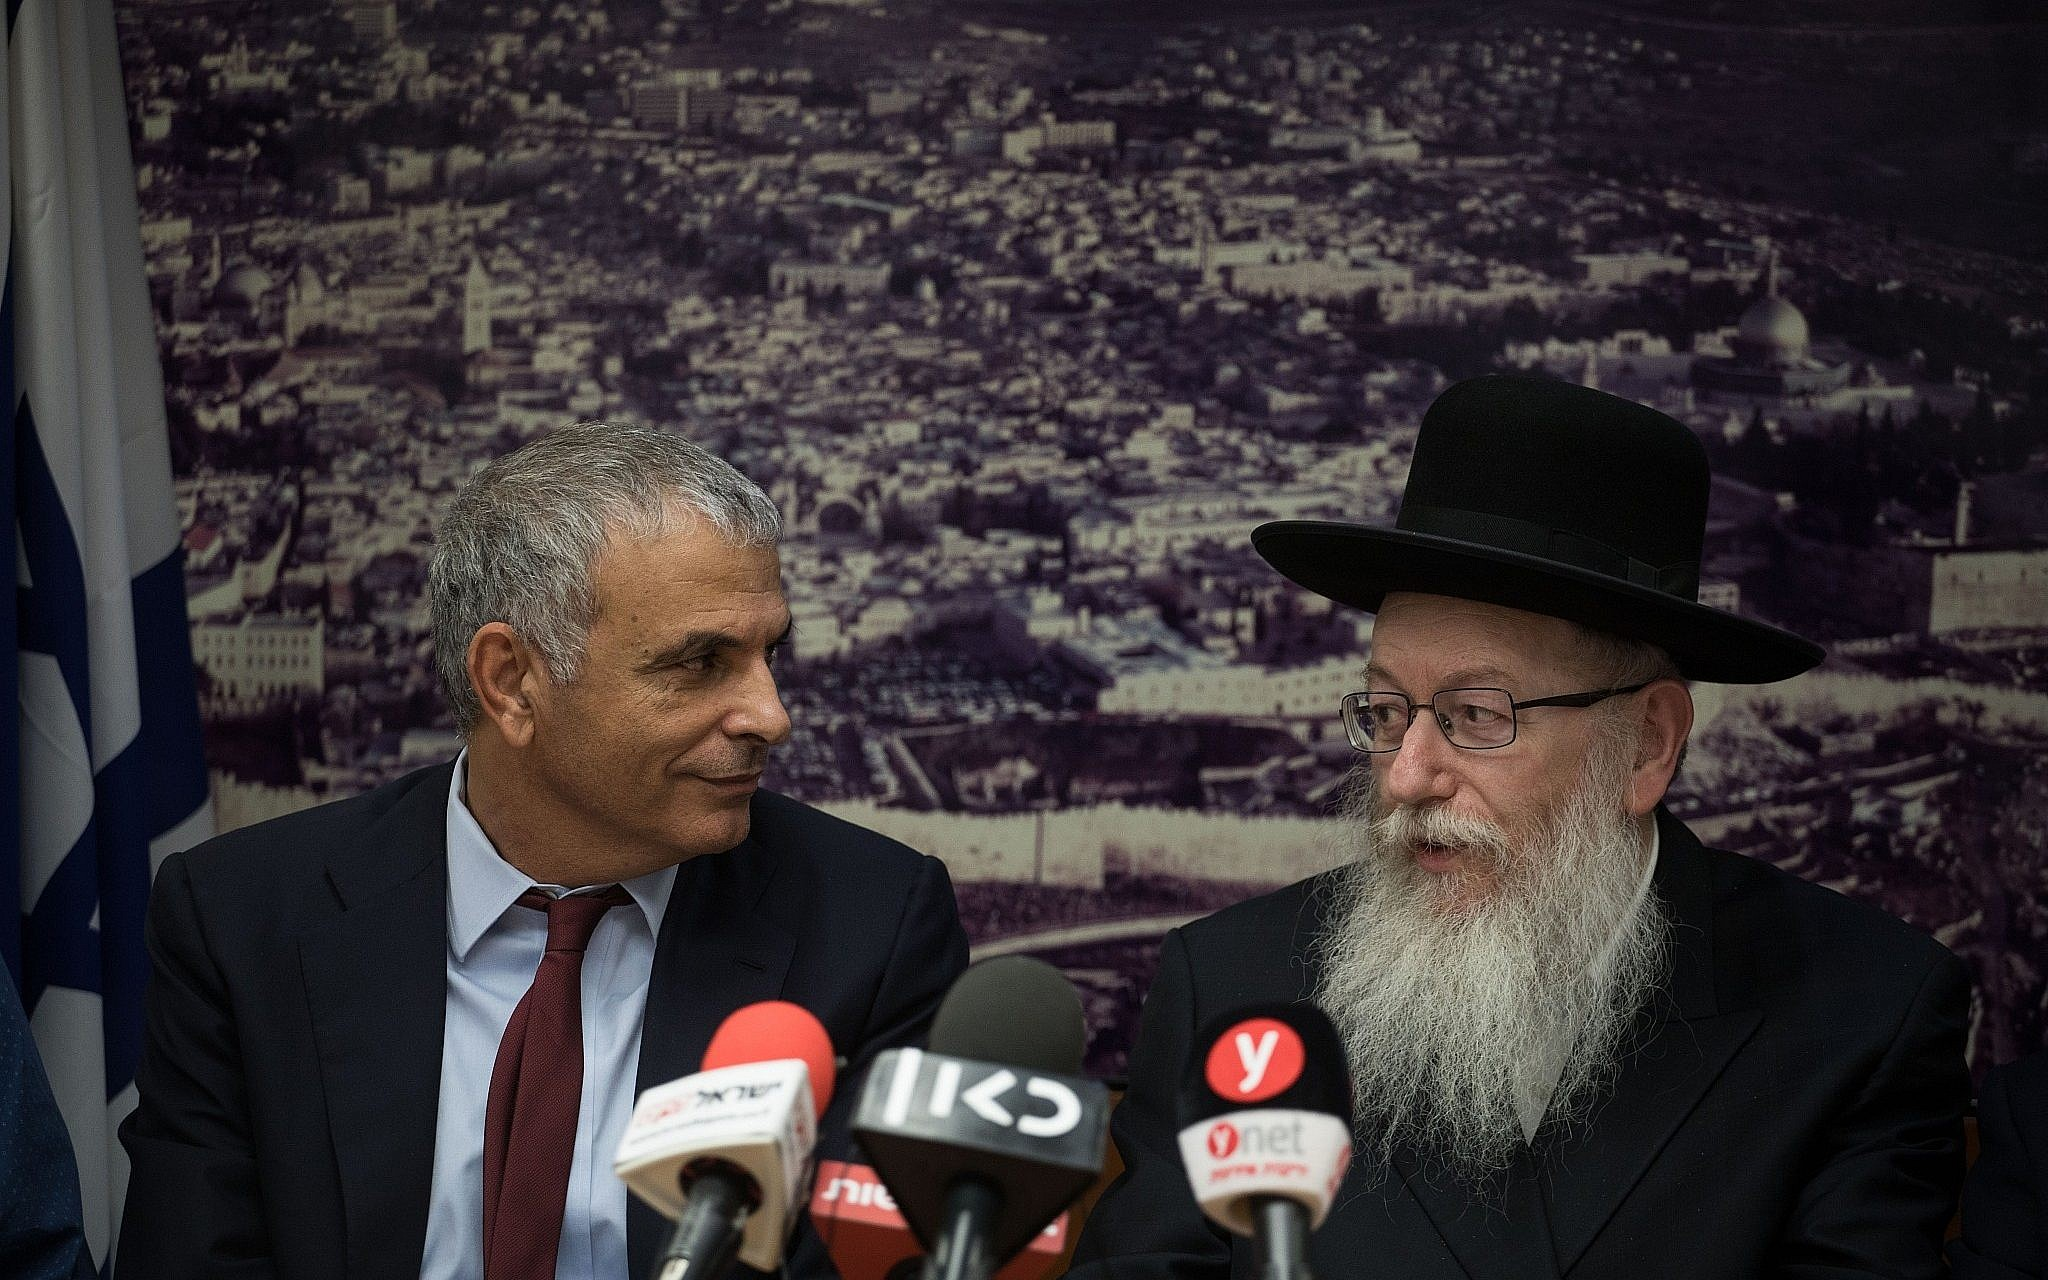 Israeli leader opens Jerusalem exhibit, rebukes opponents